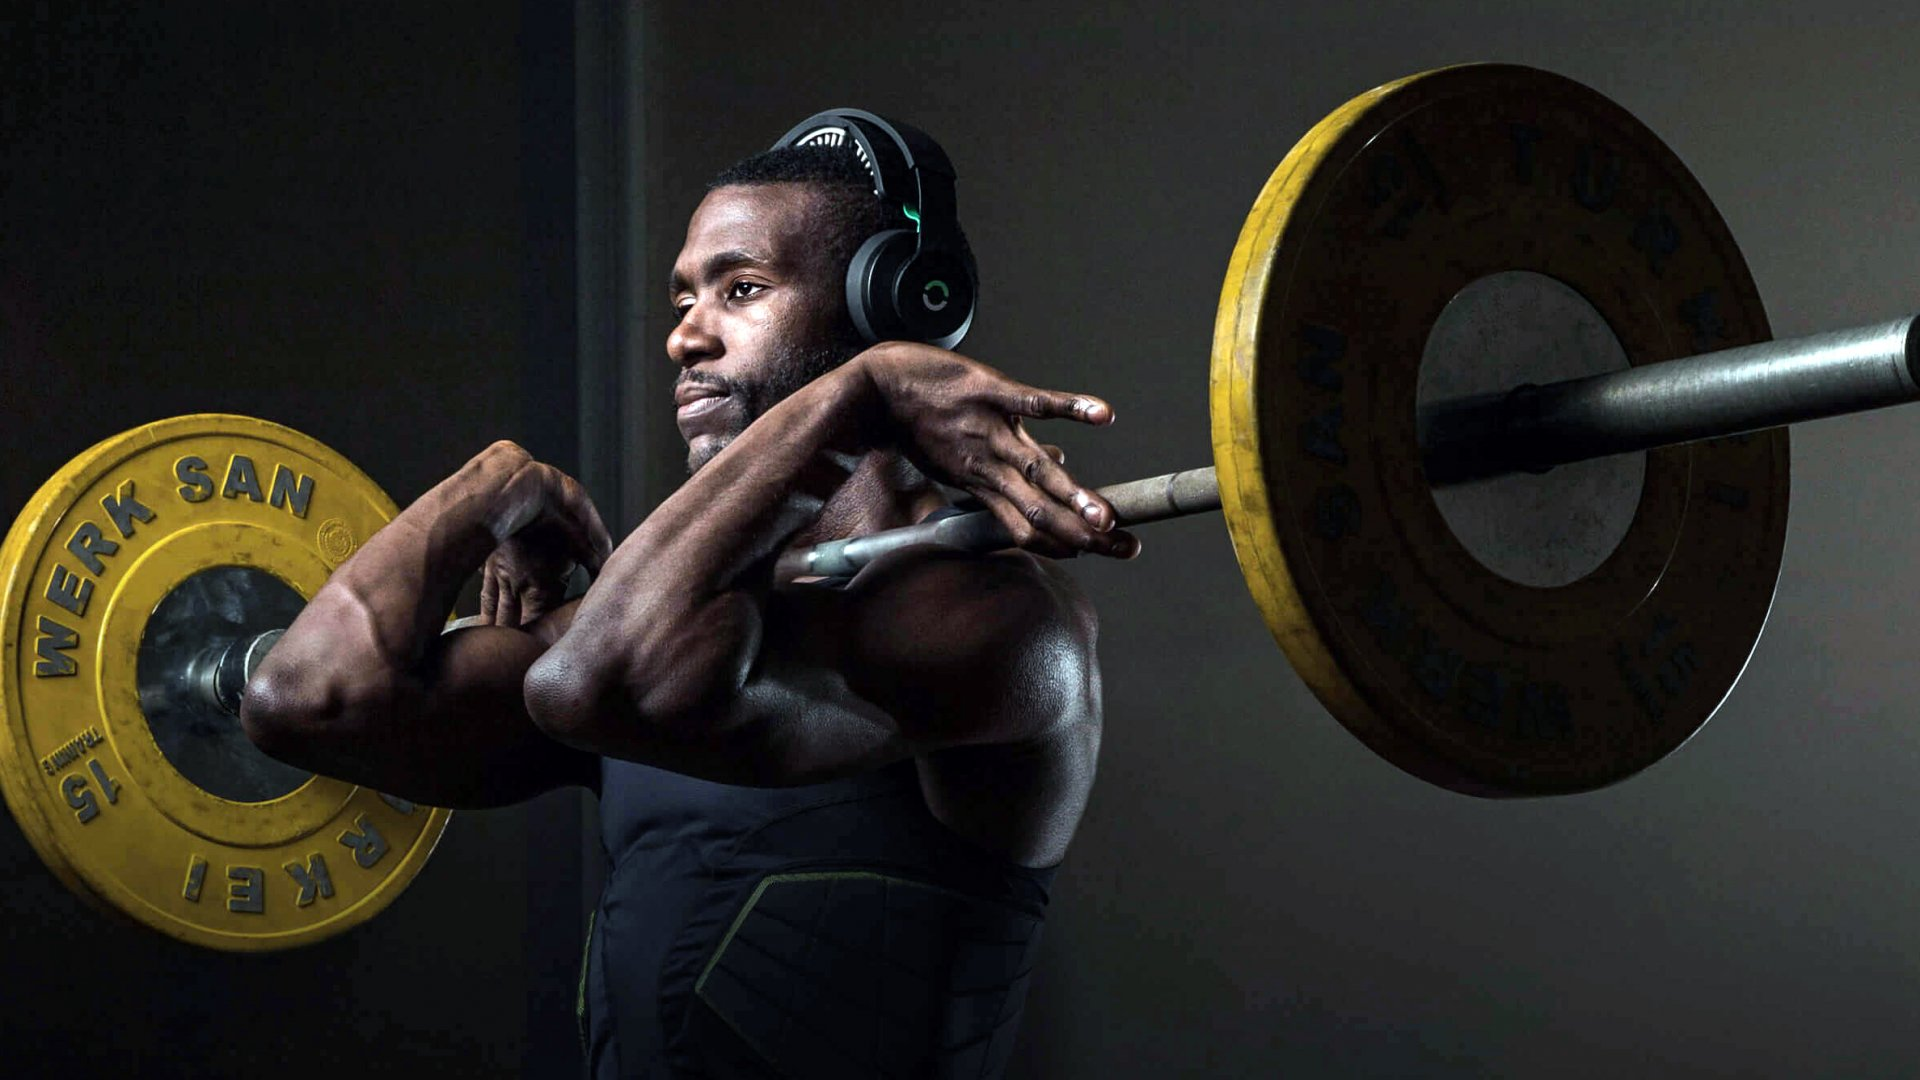 This Halo Sport headphone helps athletes train 50 percent faster, and they only have to use it for 20 minutes.